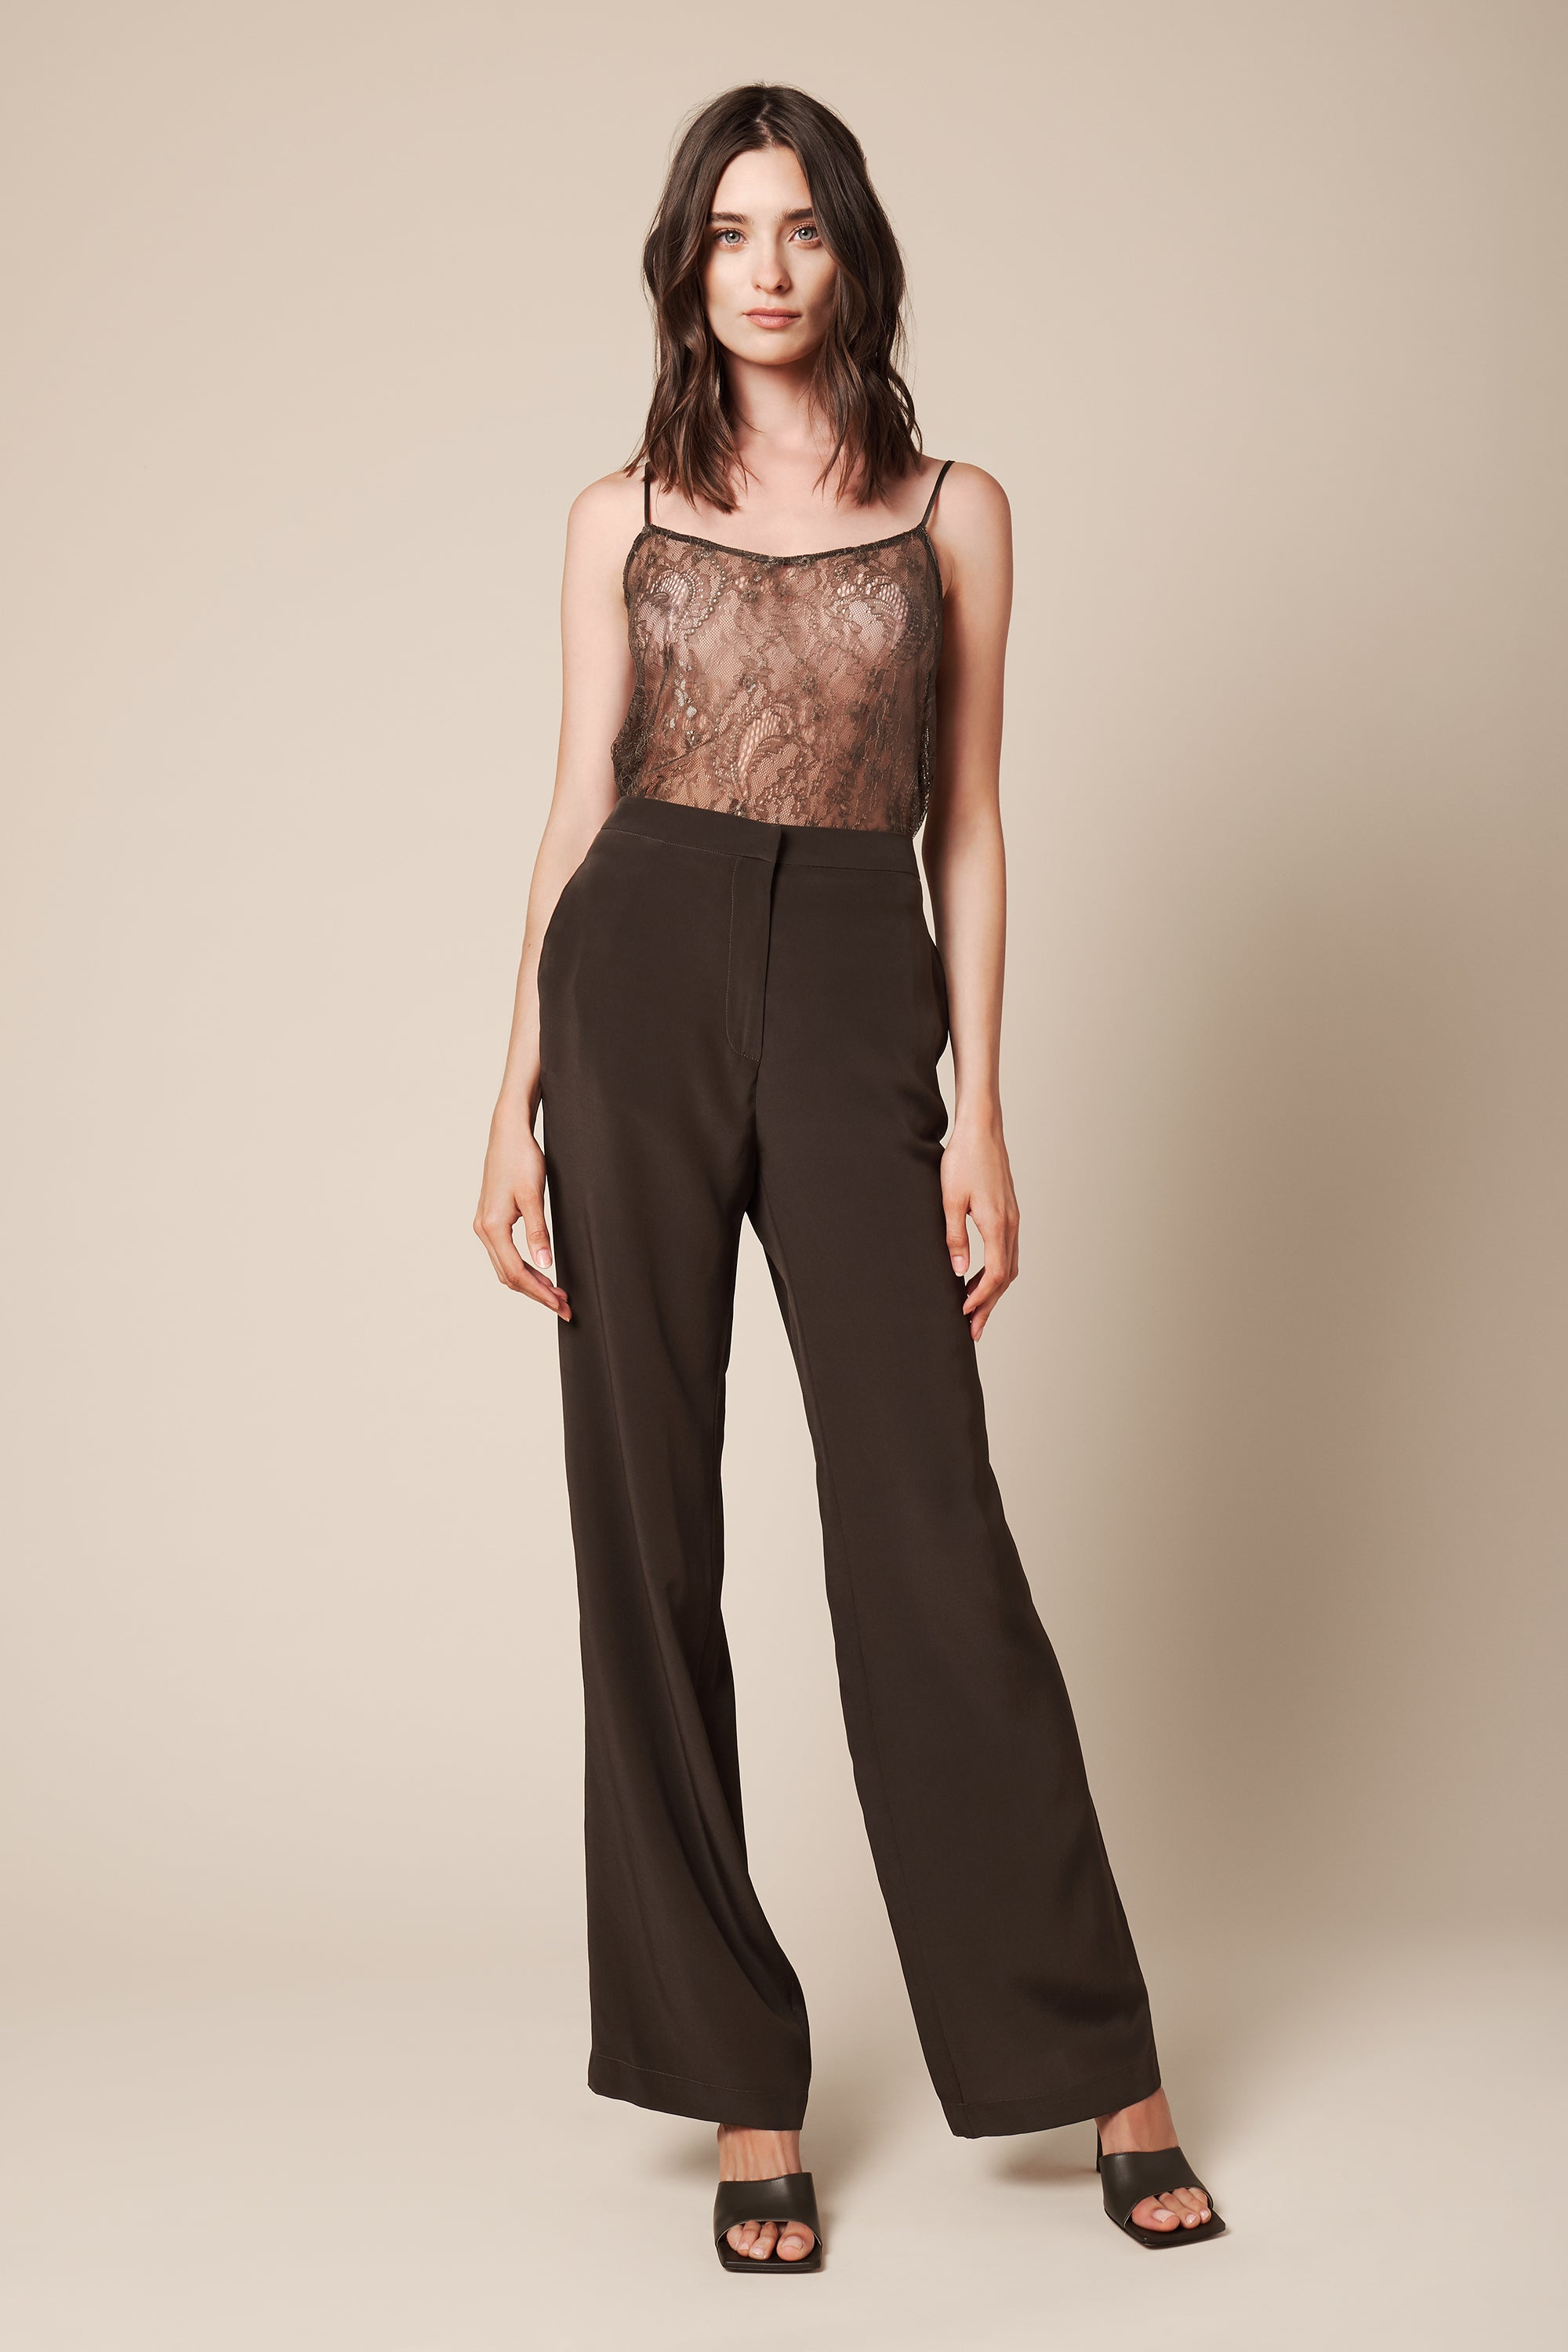 LINDA CREPE DE CHINE PANT | OLIVE - FINAL SALE